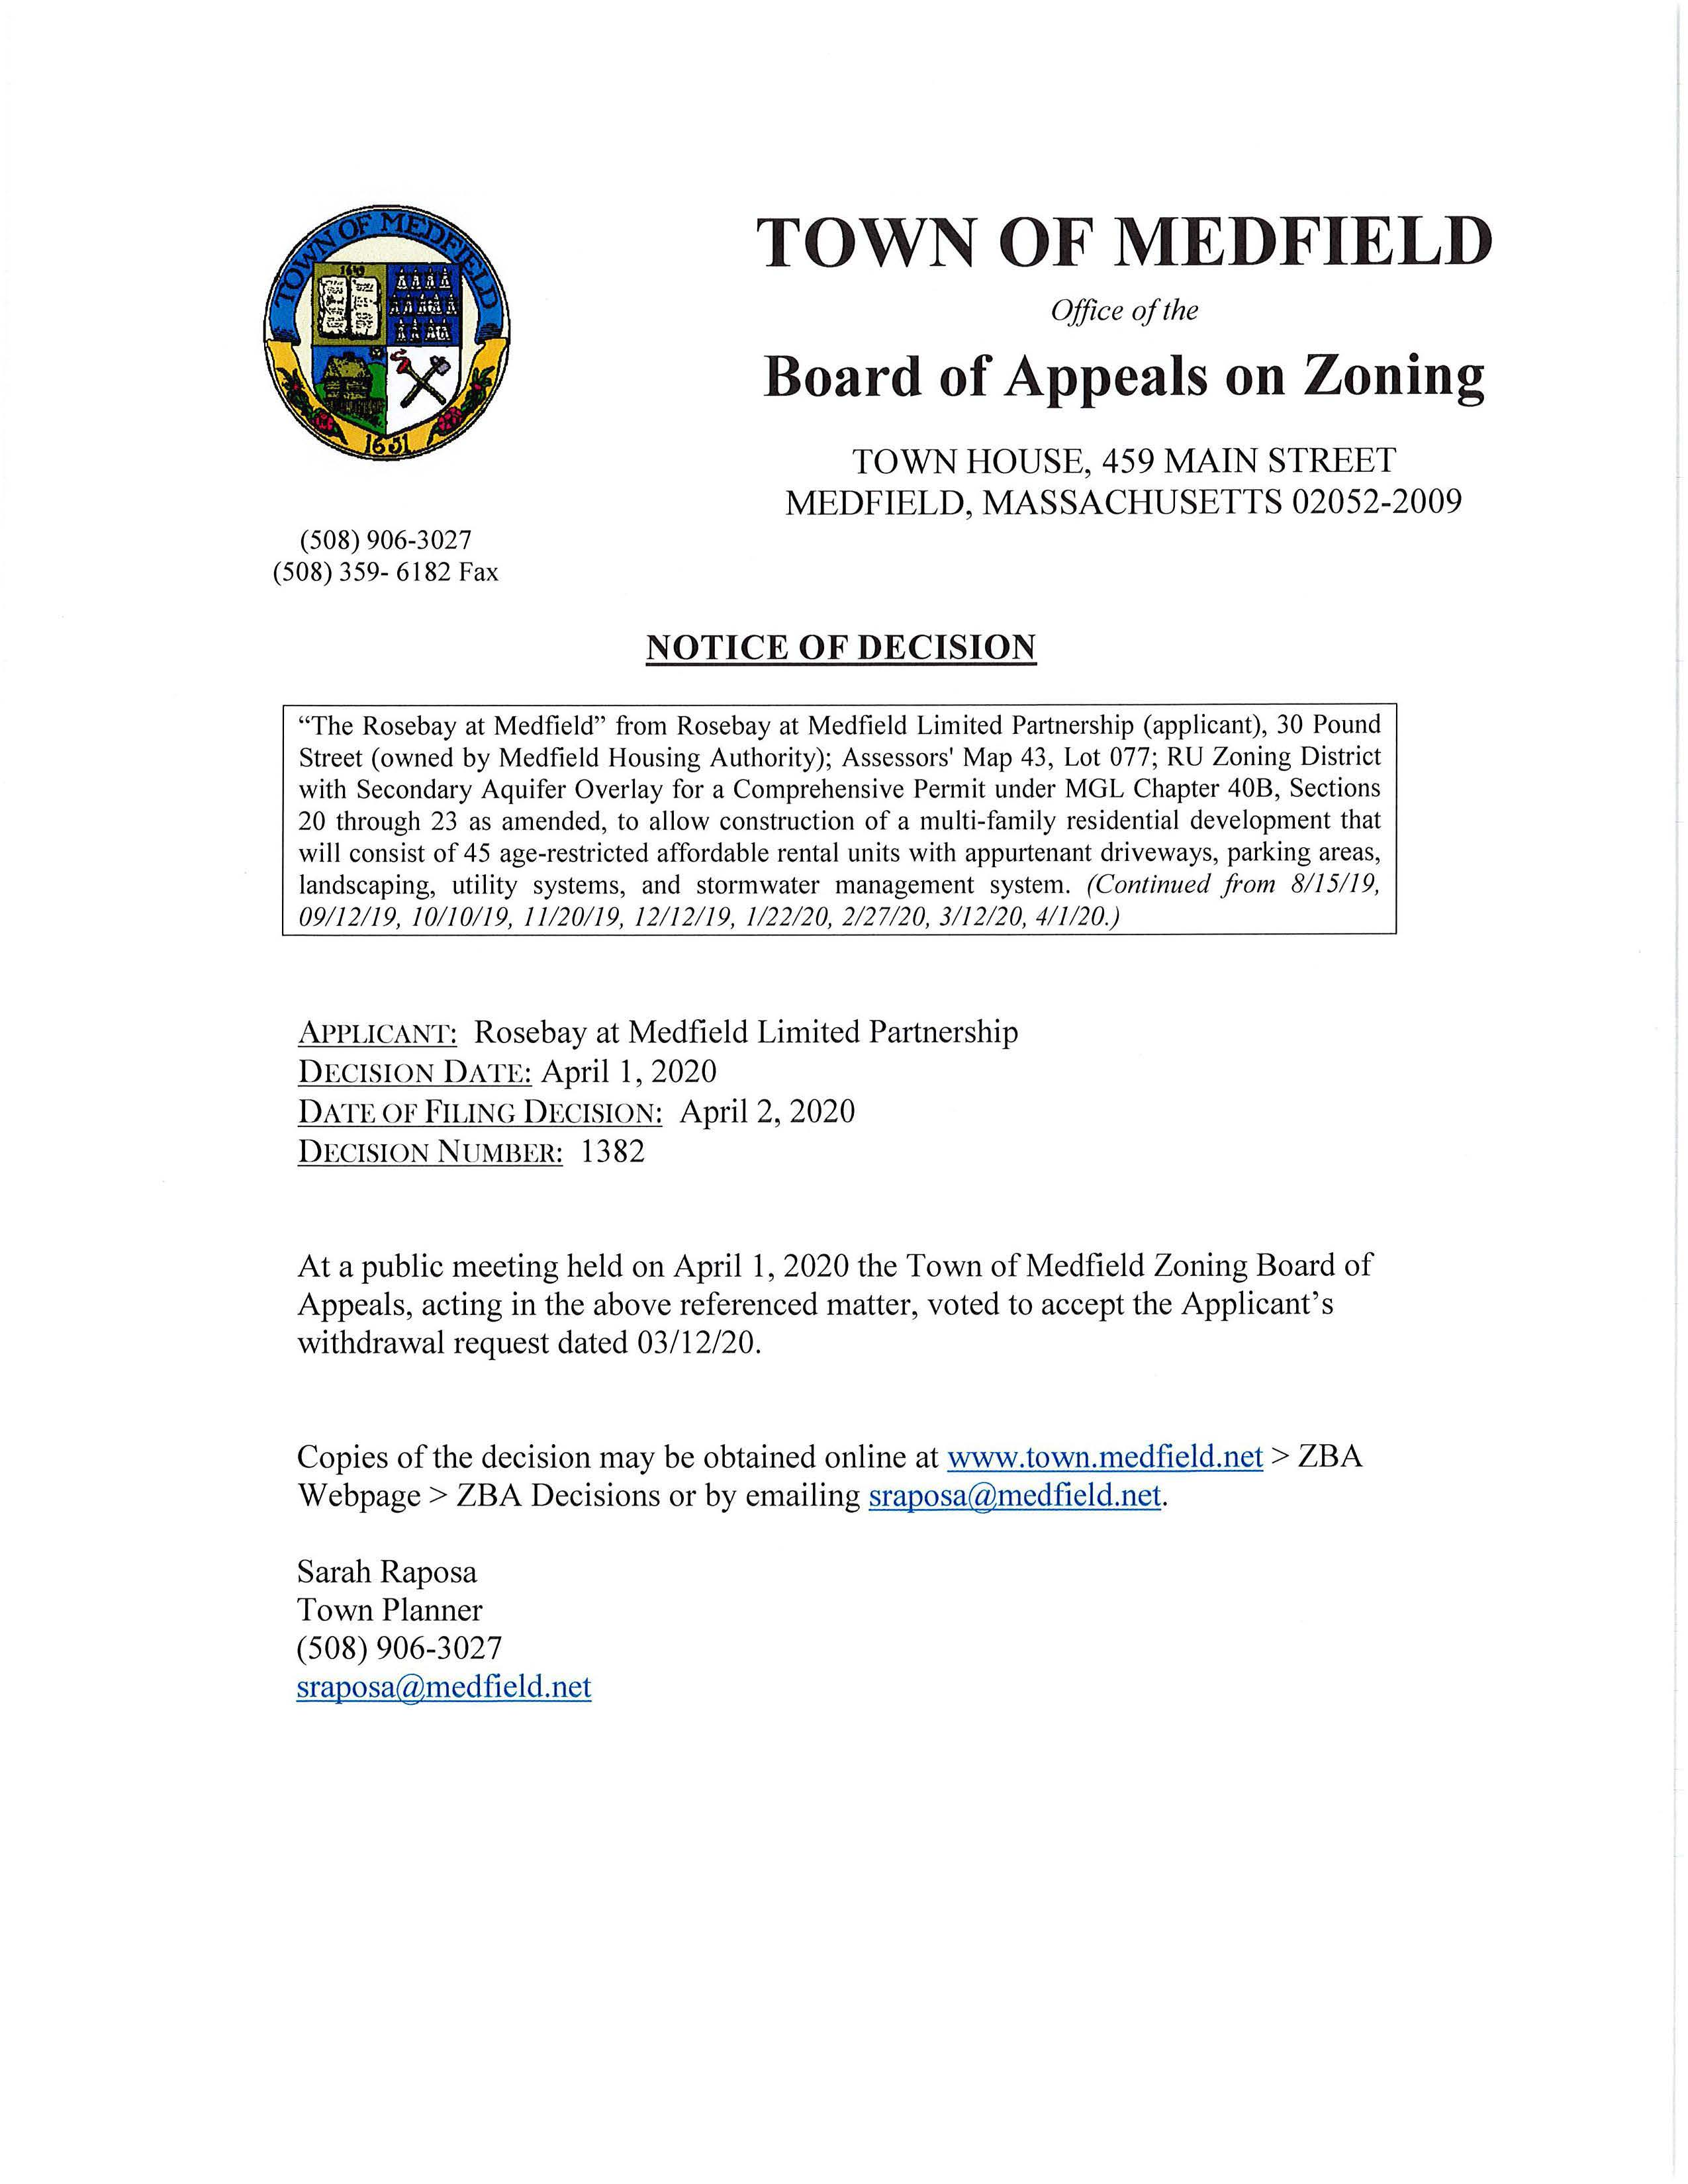 """(508) 906-3027 (508) 359- 6182 Fax TOWN OF MEDFIELD Office of the Board of Appeals on Zoning TOWN HOUSE, 459 MAIN STREET MEDFIELD, MASSACHUSETTS 02052-2009 NOTICE OF DECISION """"The Rosebay at Medfield"""" from Rosebay at Medfield Limited Partnership (applicant), 30 Pound Street (owned by Medfield Housing Authority); Assessors' Map 43, Lot 077; RU Zoning District with Secondary Aquifer Overlay for a Comprehensive Permit under MGL Chapter 40B, Sections 20 through 23 as amended, to allow construction of a multi-family residential development that will consist of 45 age-restricted affordable rental units with appurtenant driveways, parking areas, landscaping, utility systems, and stormwater management system. (Continued from 8115119, 09112119, 10110119, 11120119, 12112119, 1122120, 2127120, 3112120, 411120.) APPLICANT: Rosebay at Medfield Limited Partnership DECISION DATE: April 1, 2020 DATE OF FILING DECISION: April 2, 2020 DECISION NUMBER: 1382 At a public meeting held on April 1, 2020 the Town of Medfield Zoning Board of Appeals, acting in the above referenced matter, voted to accept the Applicant's withdrawal request dated 03/12/20. Copies of the decision may be obtained online at www.town.medfield.net > ZBA Webpage > ZBA Decisions or by emailing sraposa@medfield.net. Sarah Raposa Town Planner (508) 906-3027 sraposa@medfield.net .J ( ''i TOWN OF MEDFIELD Office of the BOARD OF APPEALS TOWN HOUSE, 459 MAIN STREET MEDFIELD, MASSACHUSETTS 02052-2009 L(M8) 906-3027 6b ~~~-.- r r-- c.:.~"""